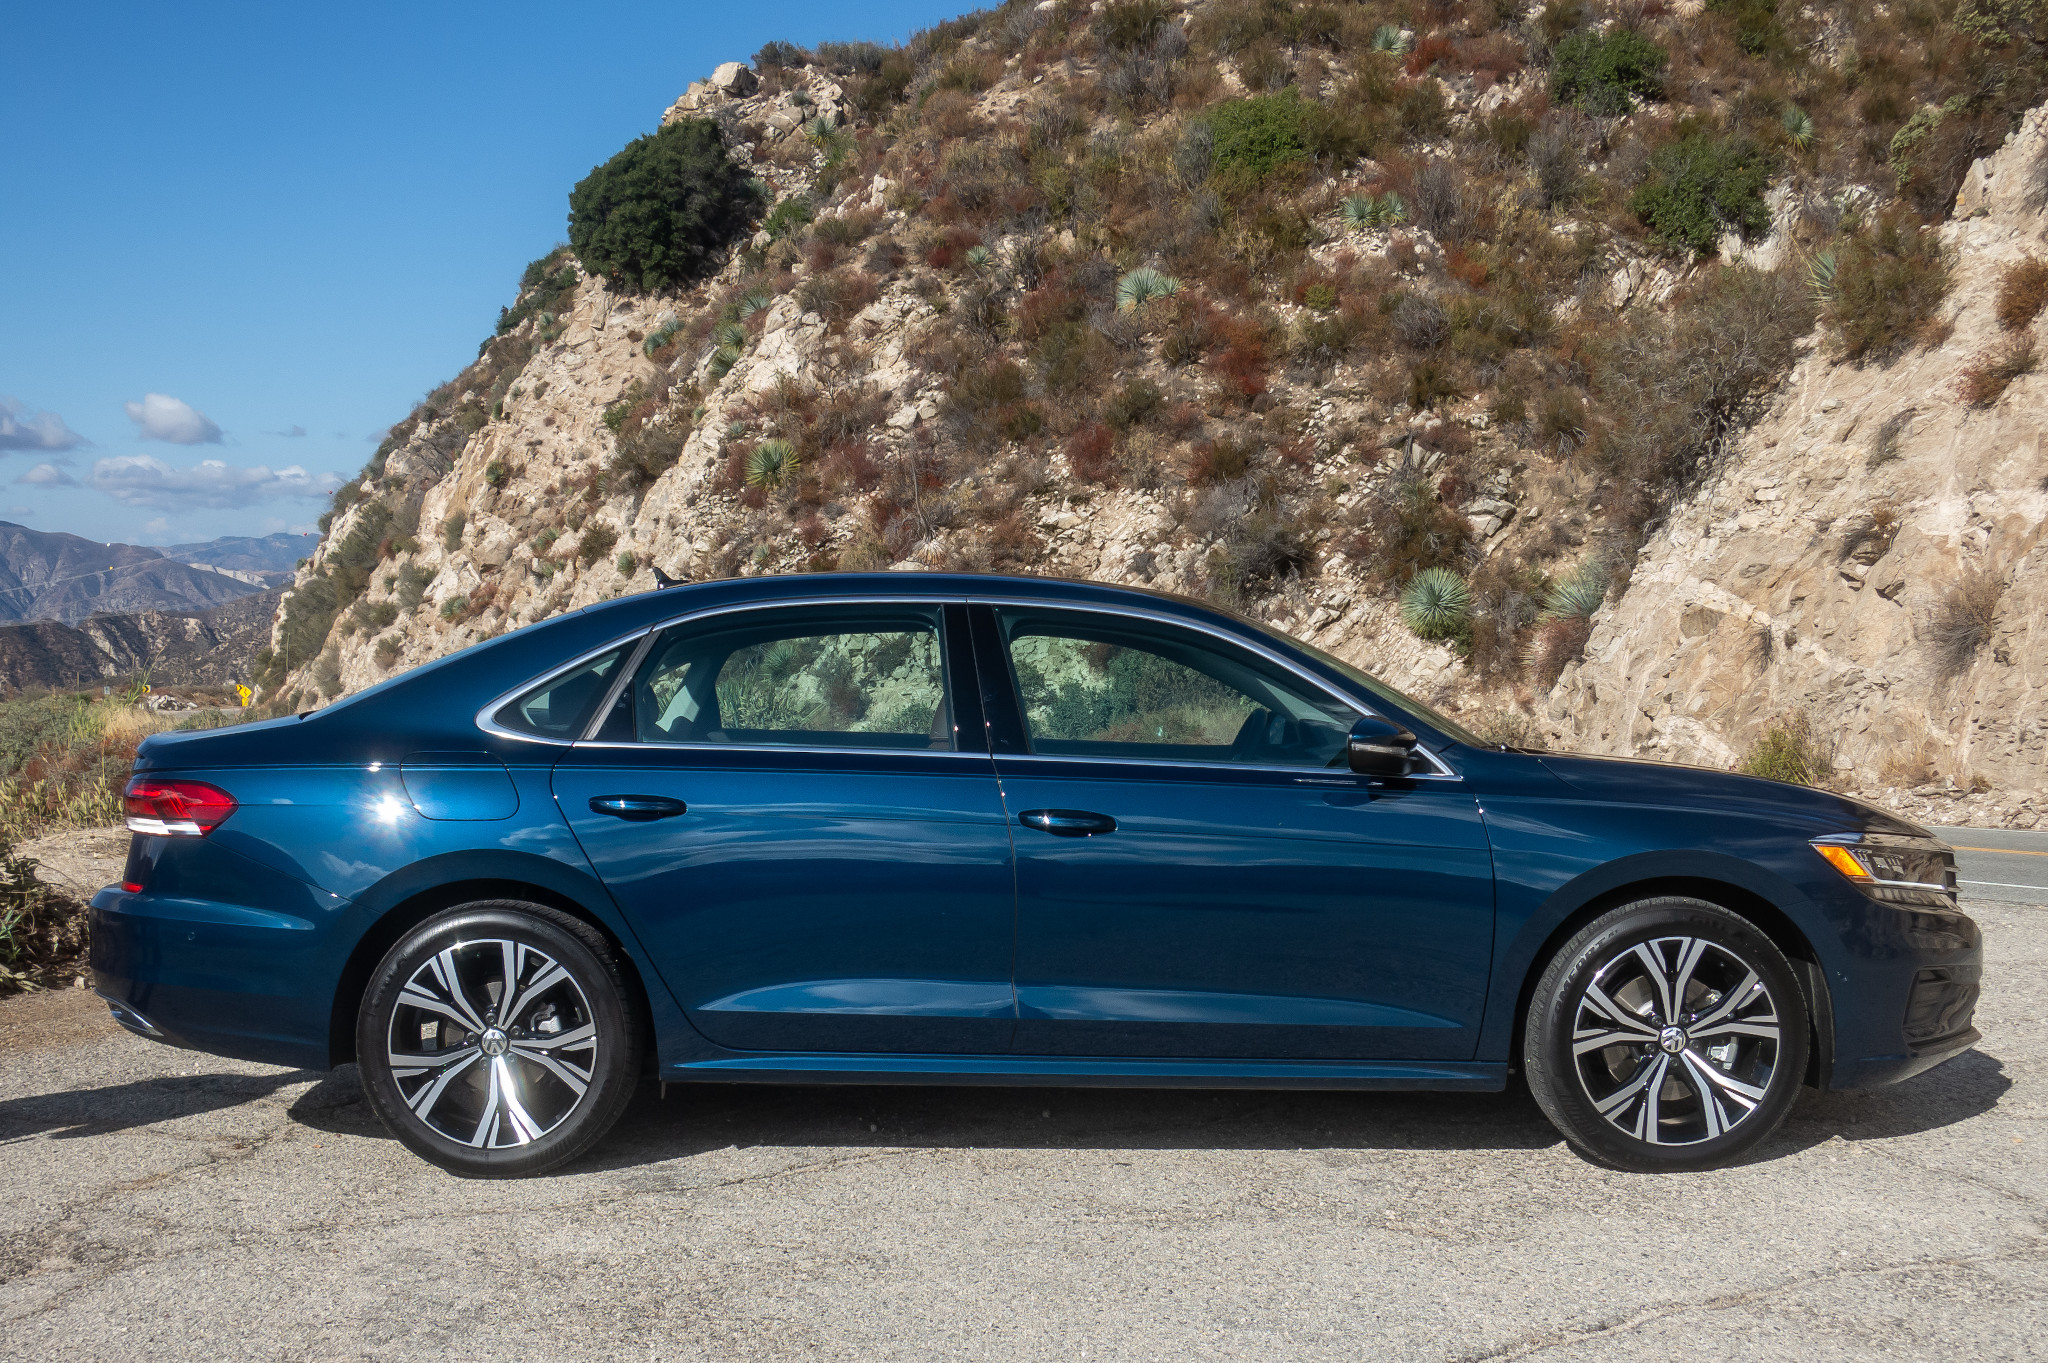 2020 Volkswagen Passat: 5 Things We Like and 4 Things We Don't